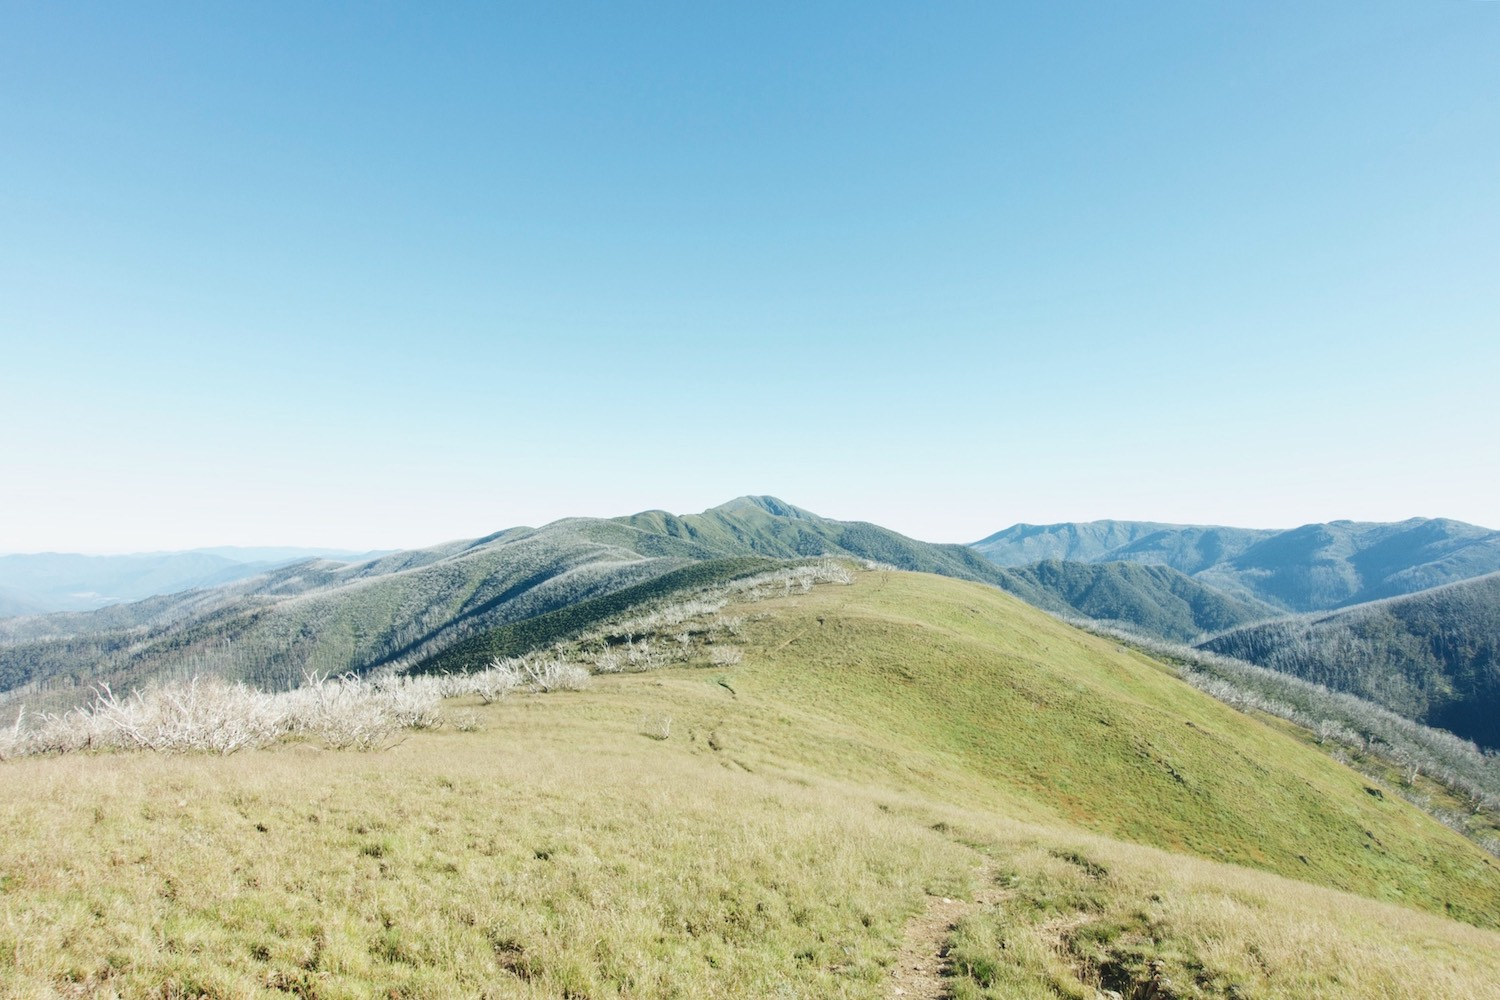 Looking back over the Razorback Ridge towards Mt Feathertop, where I had spent the night.